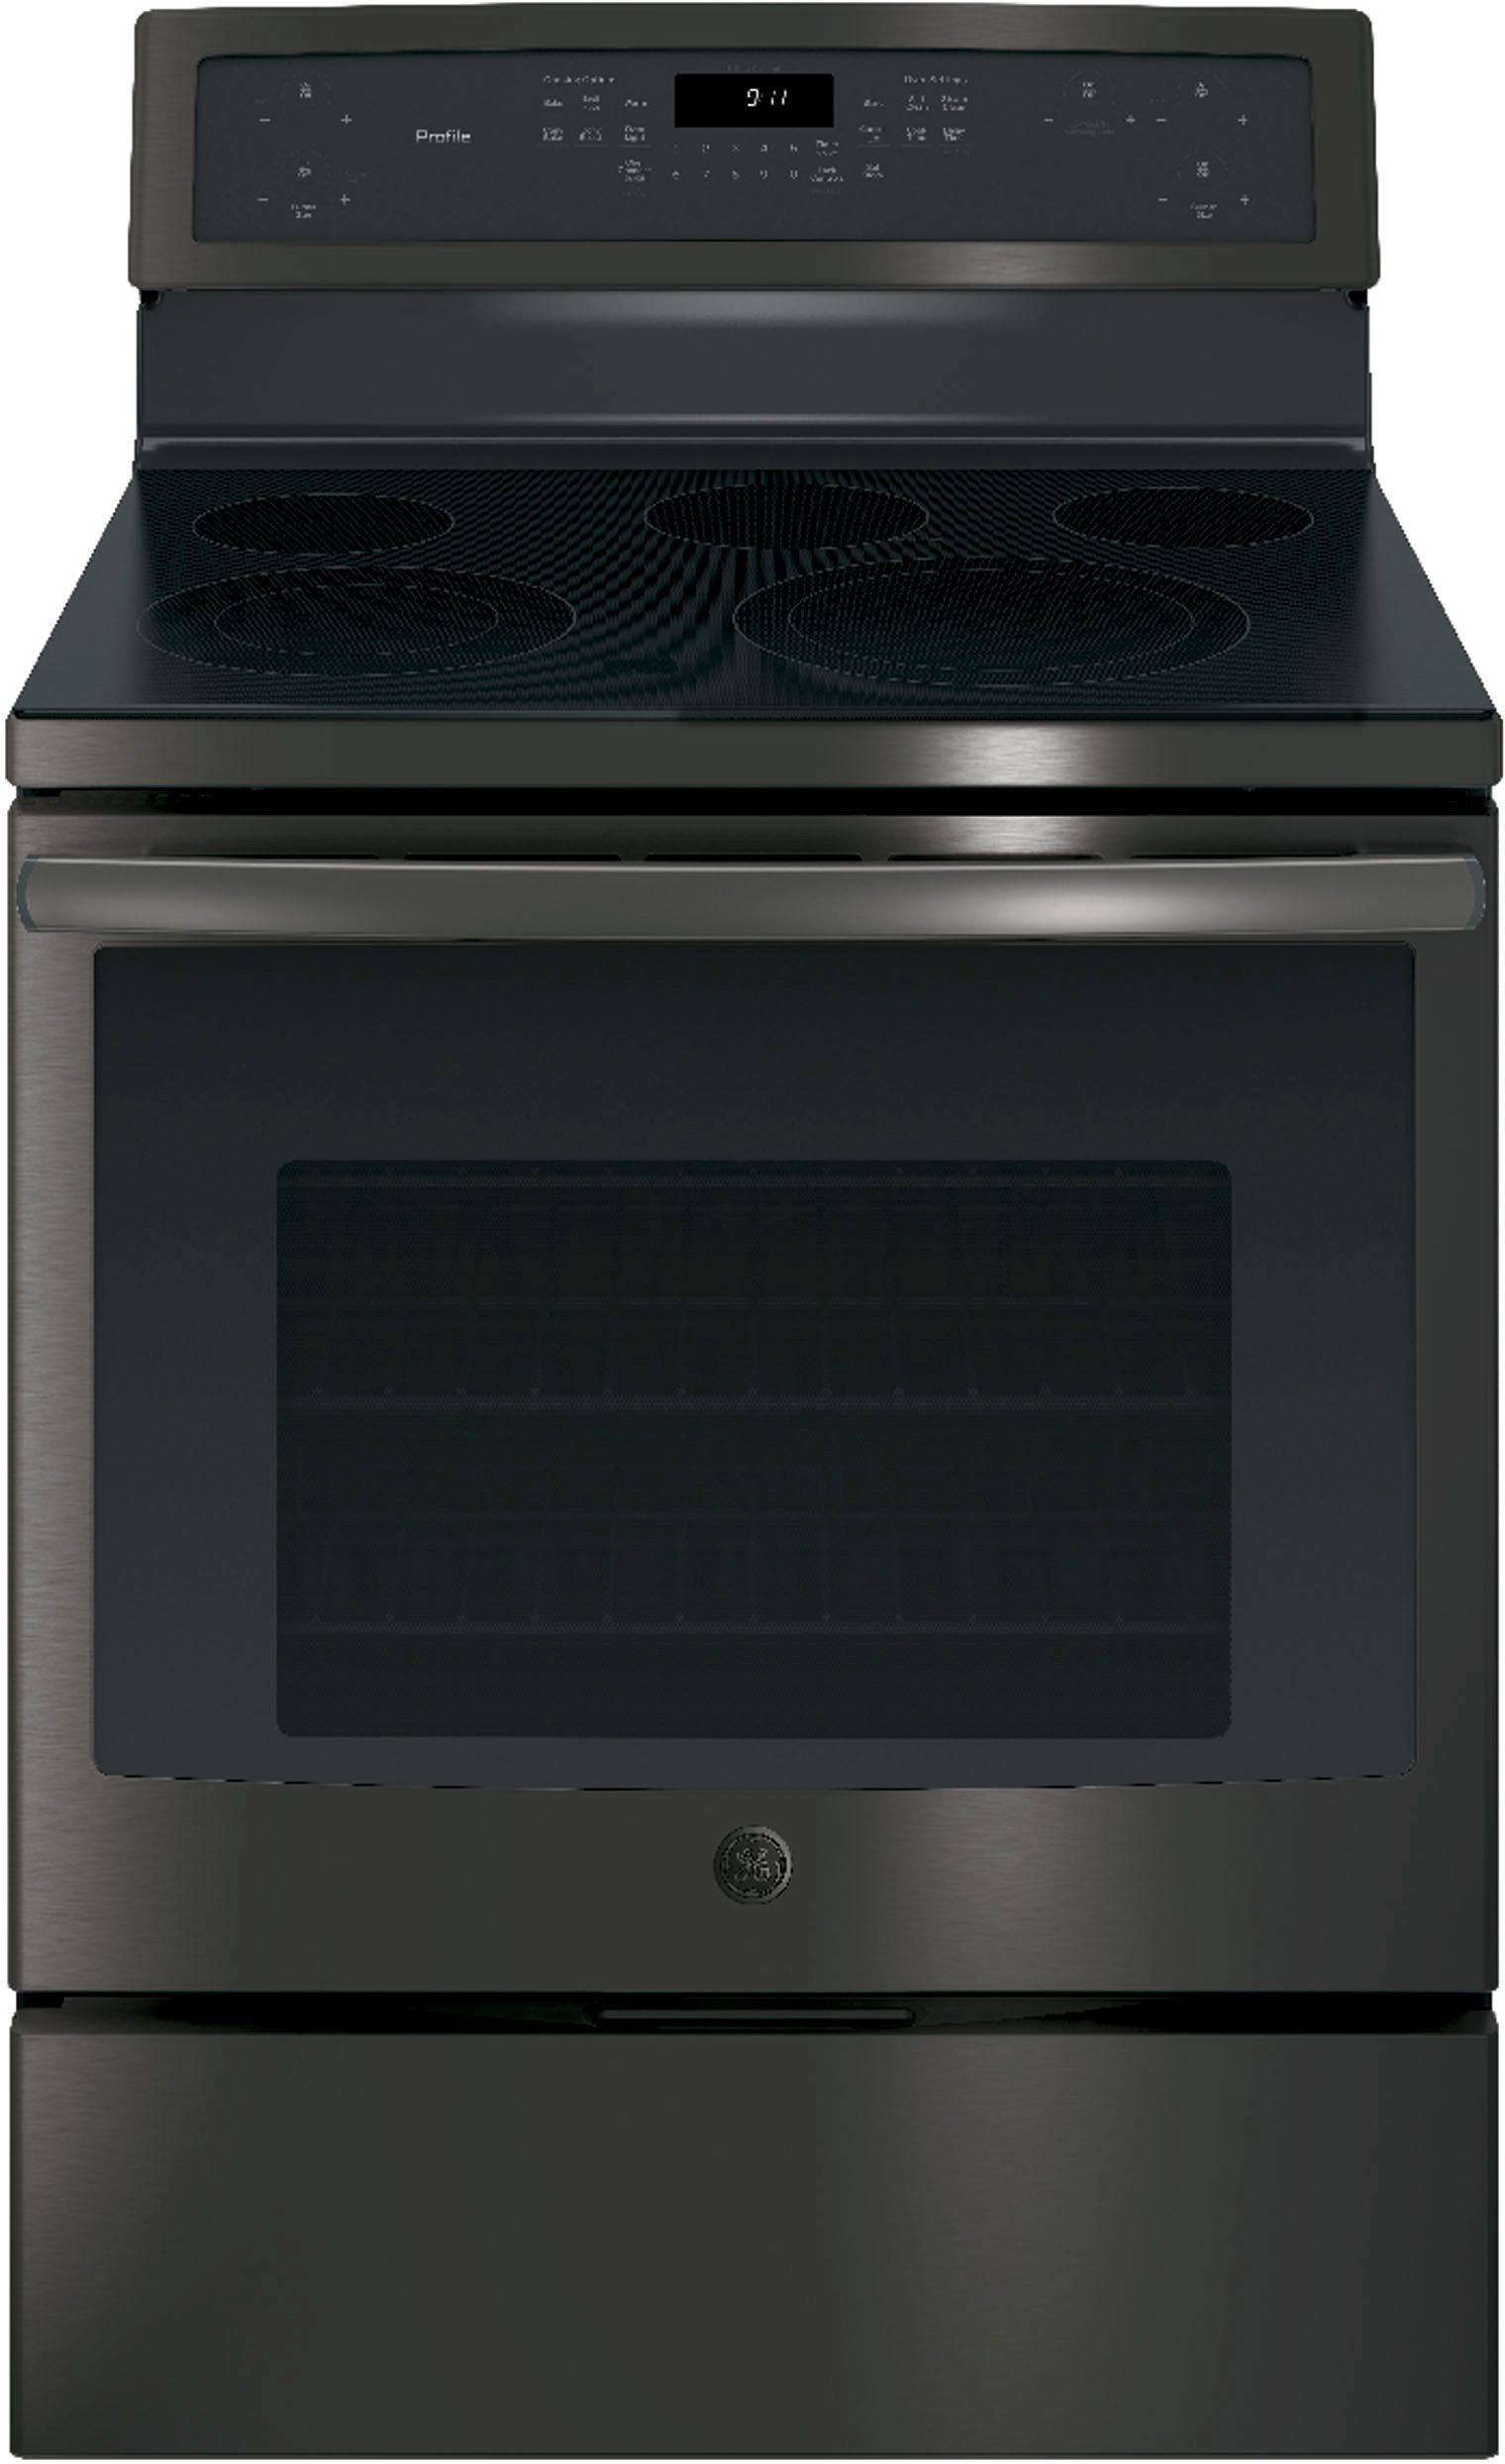 Ge Profile Series 30 Free Standing Electric Convection Range Black Stainless Steel